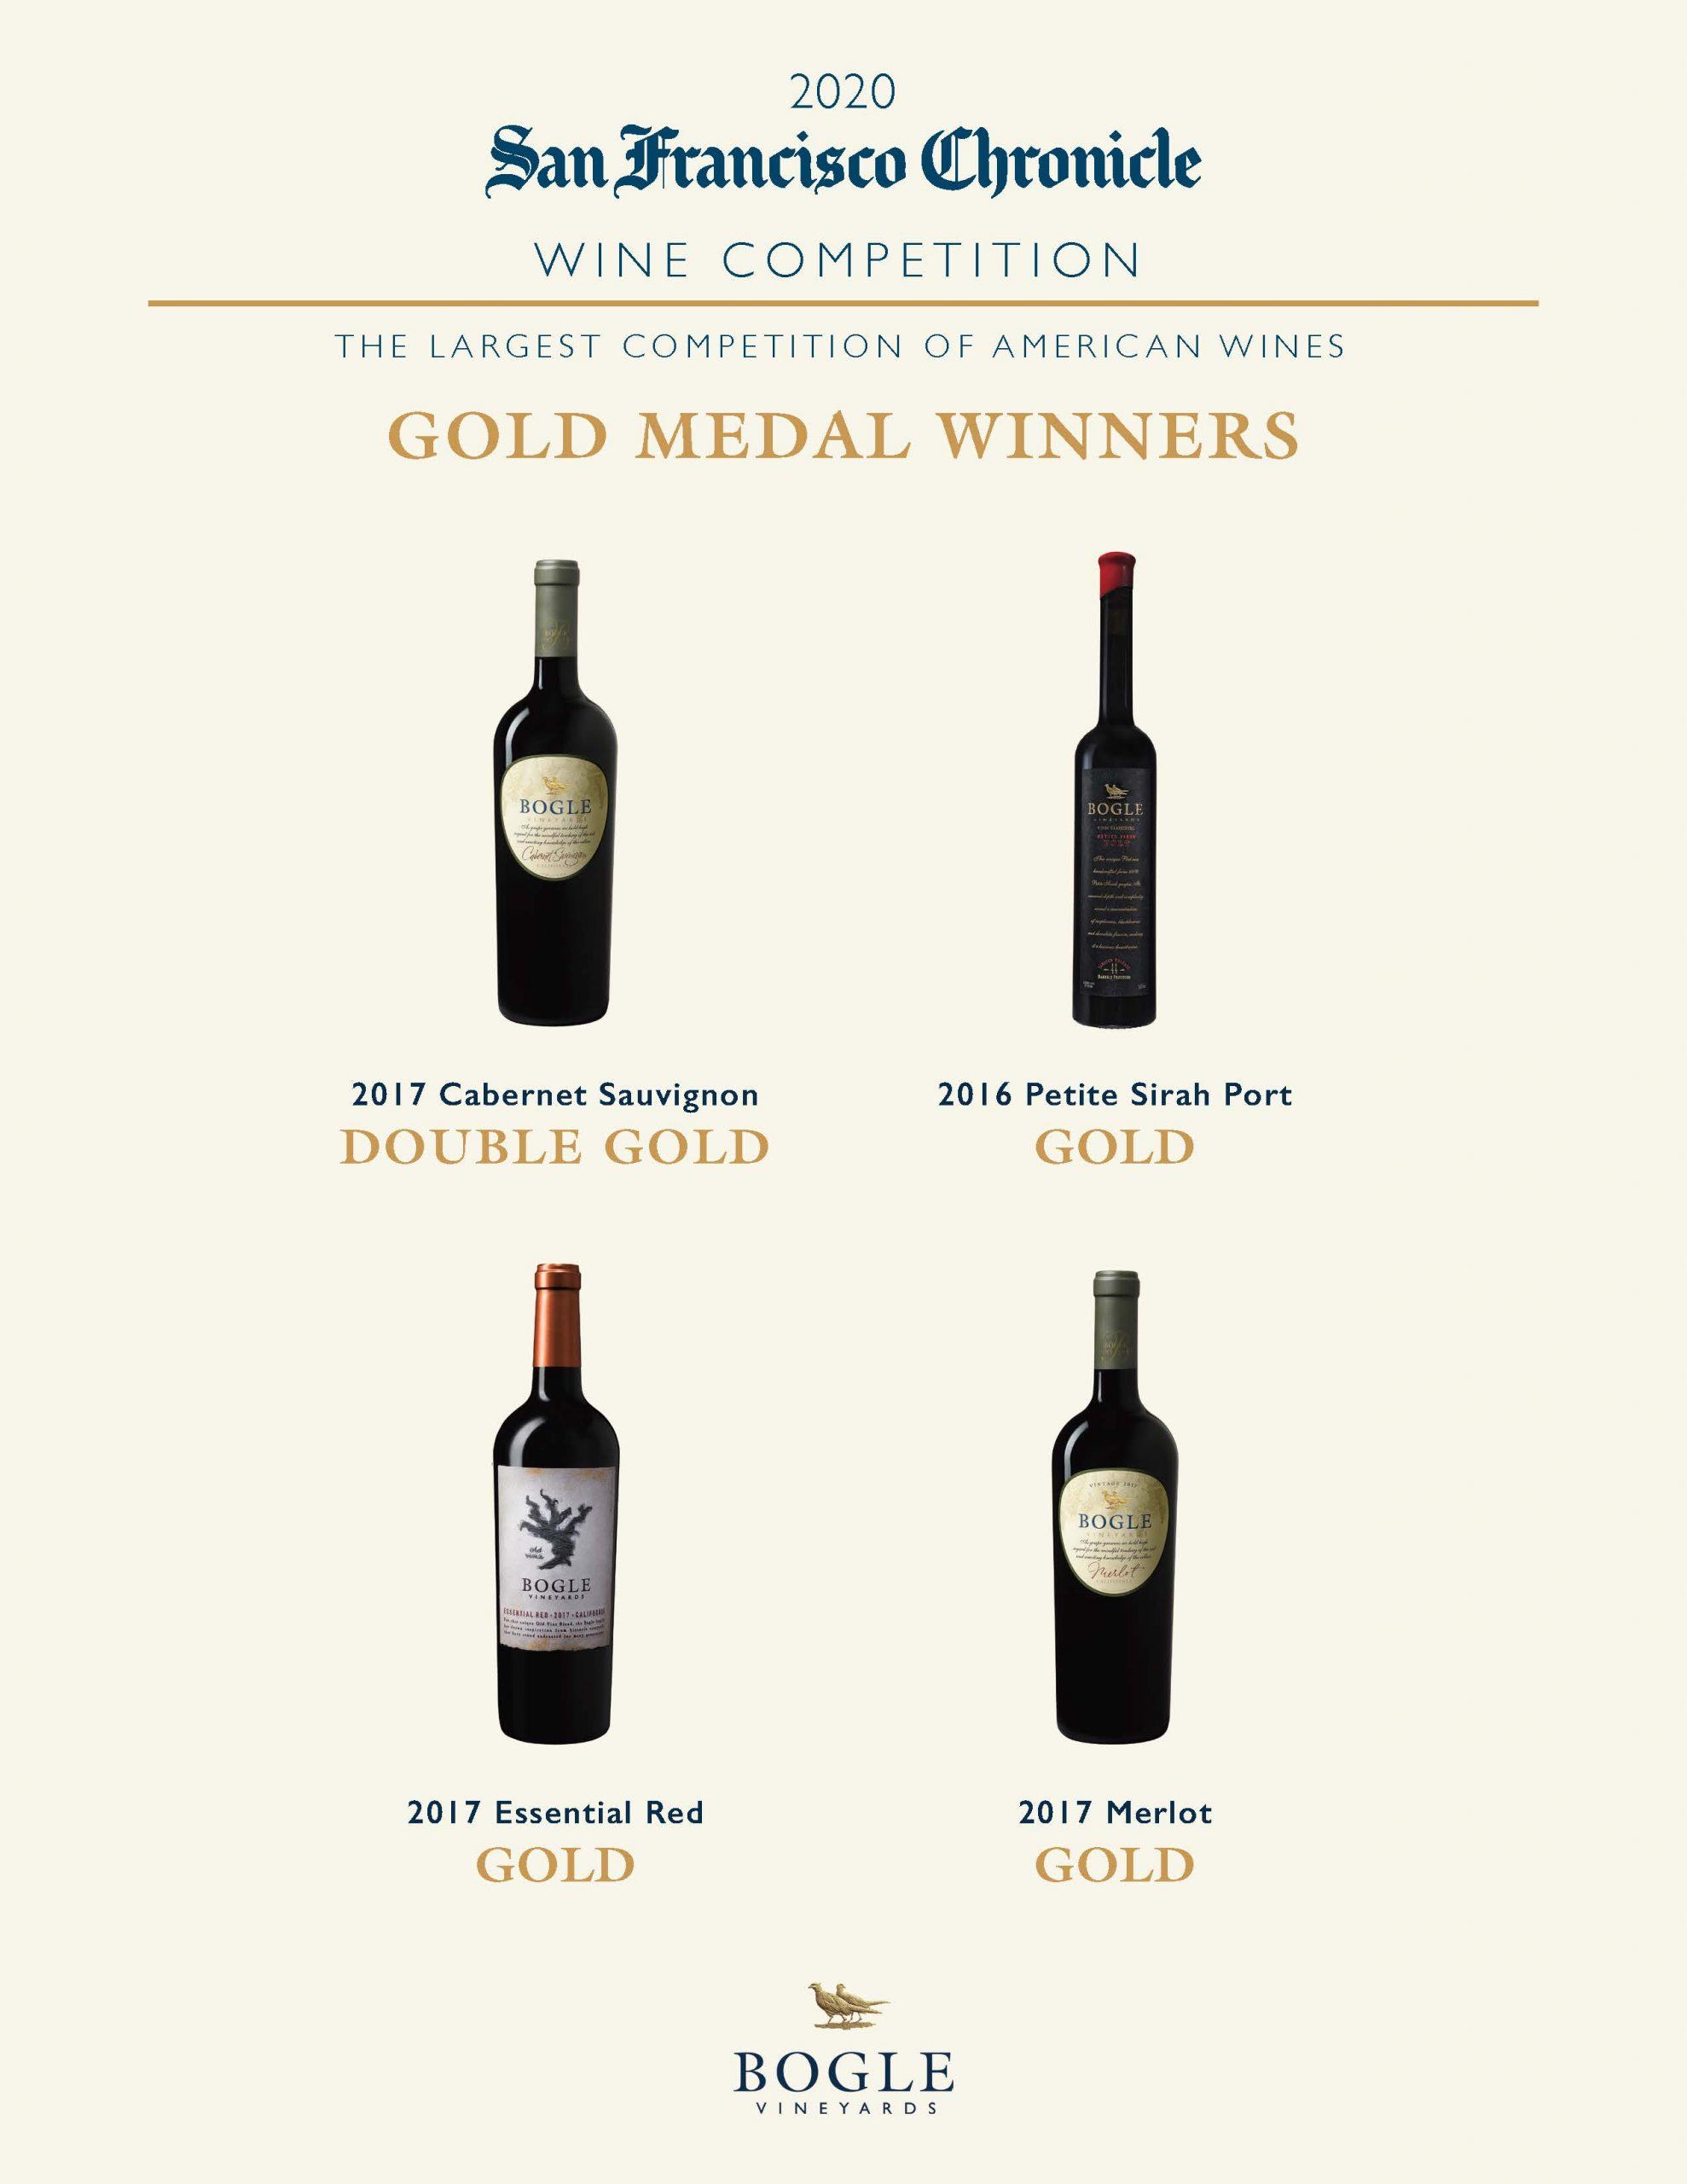 2020 San Francisco Chronicle Wine Competition Accolades